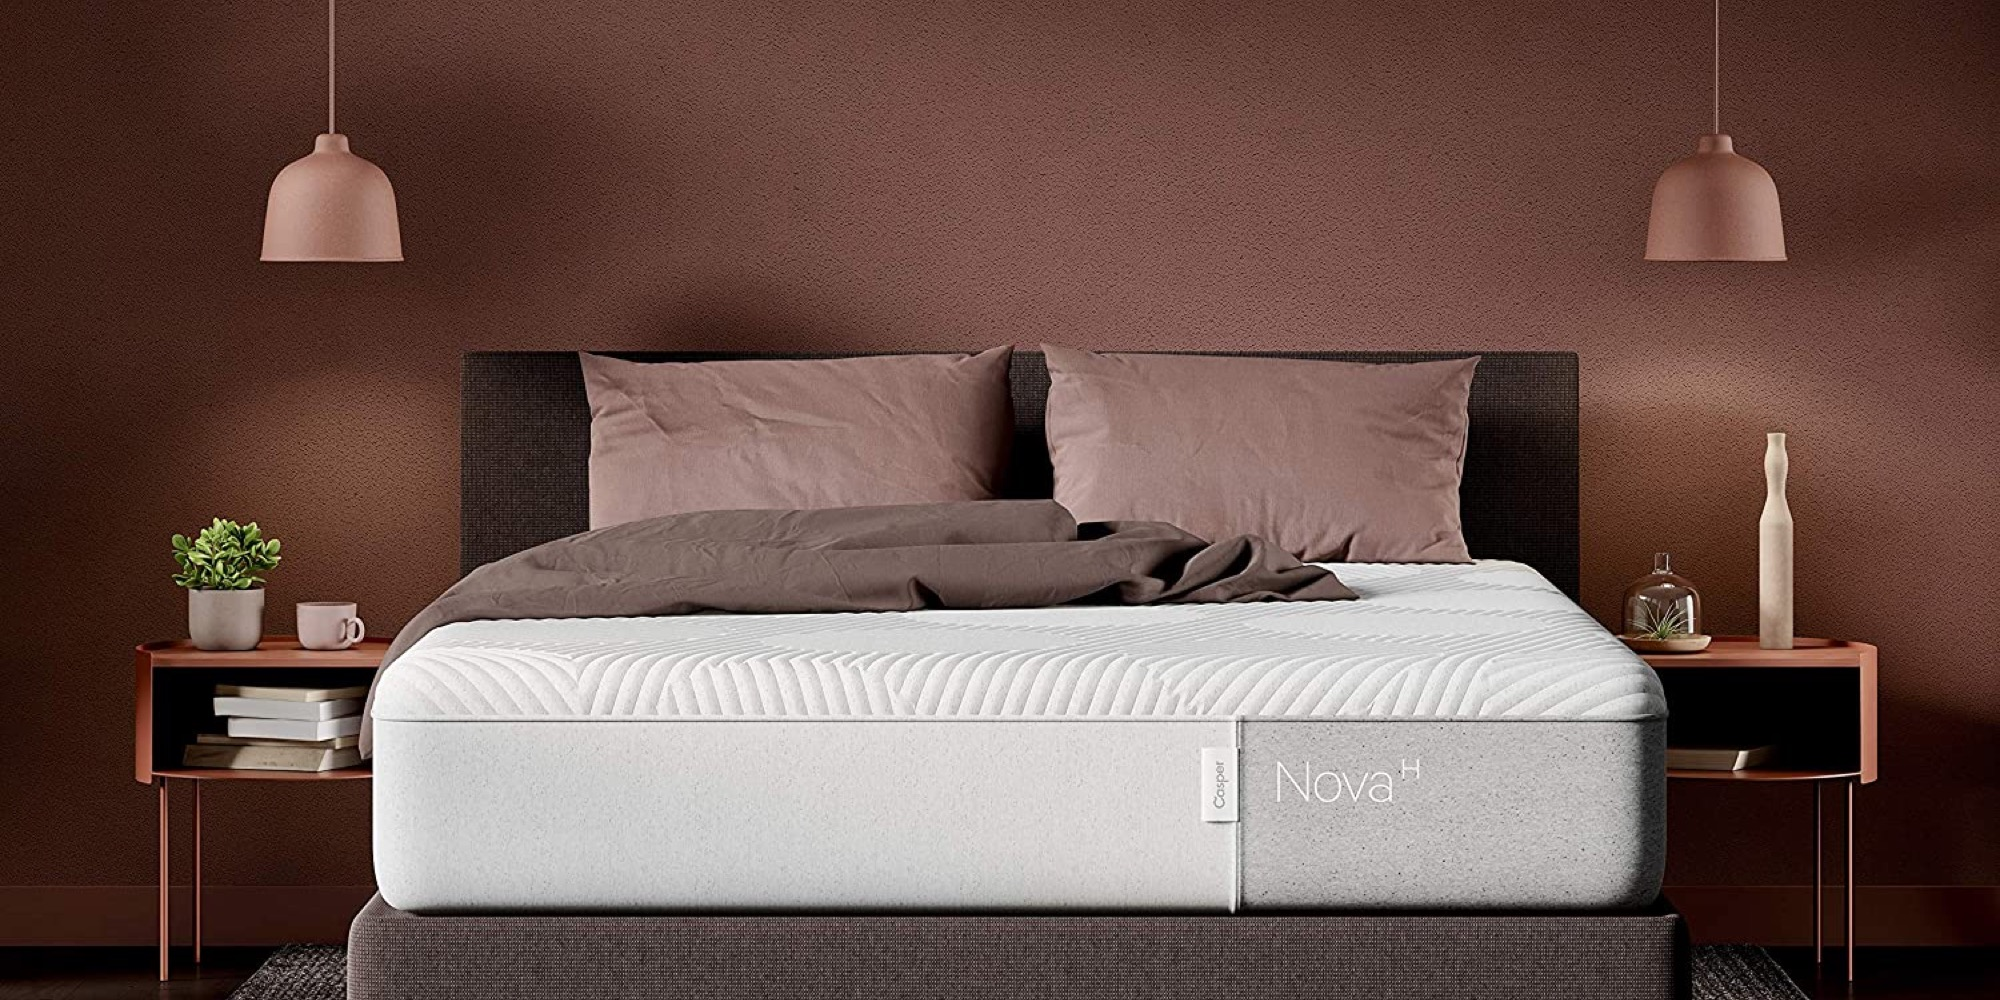 Casper And Zinus Mattresses And Bed Frames Fall As Low As 222 At Amazon 9to5toys